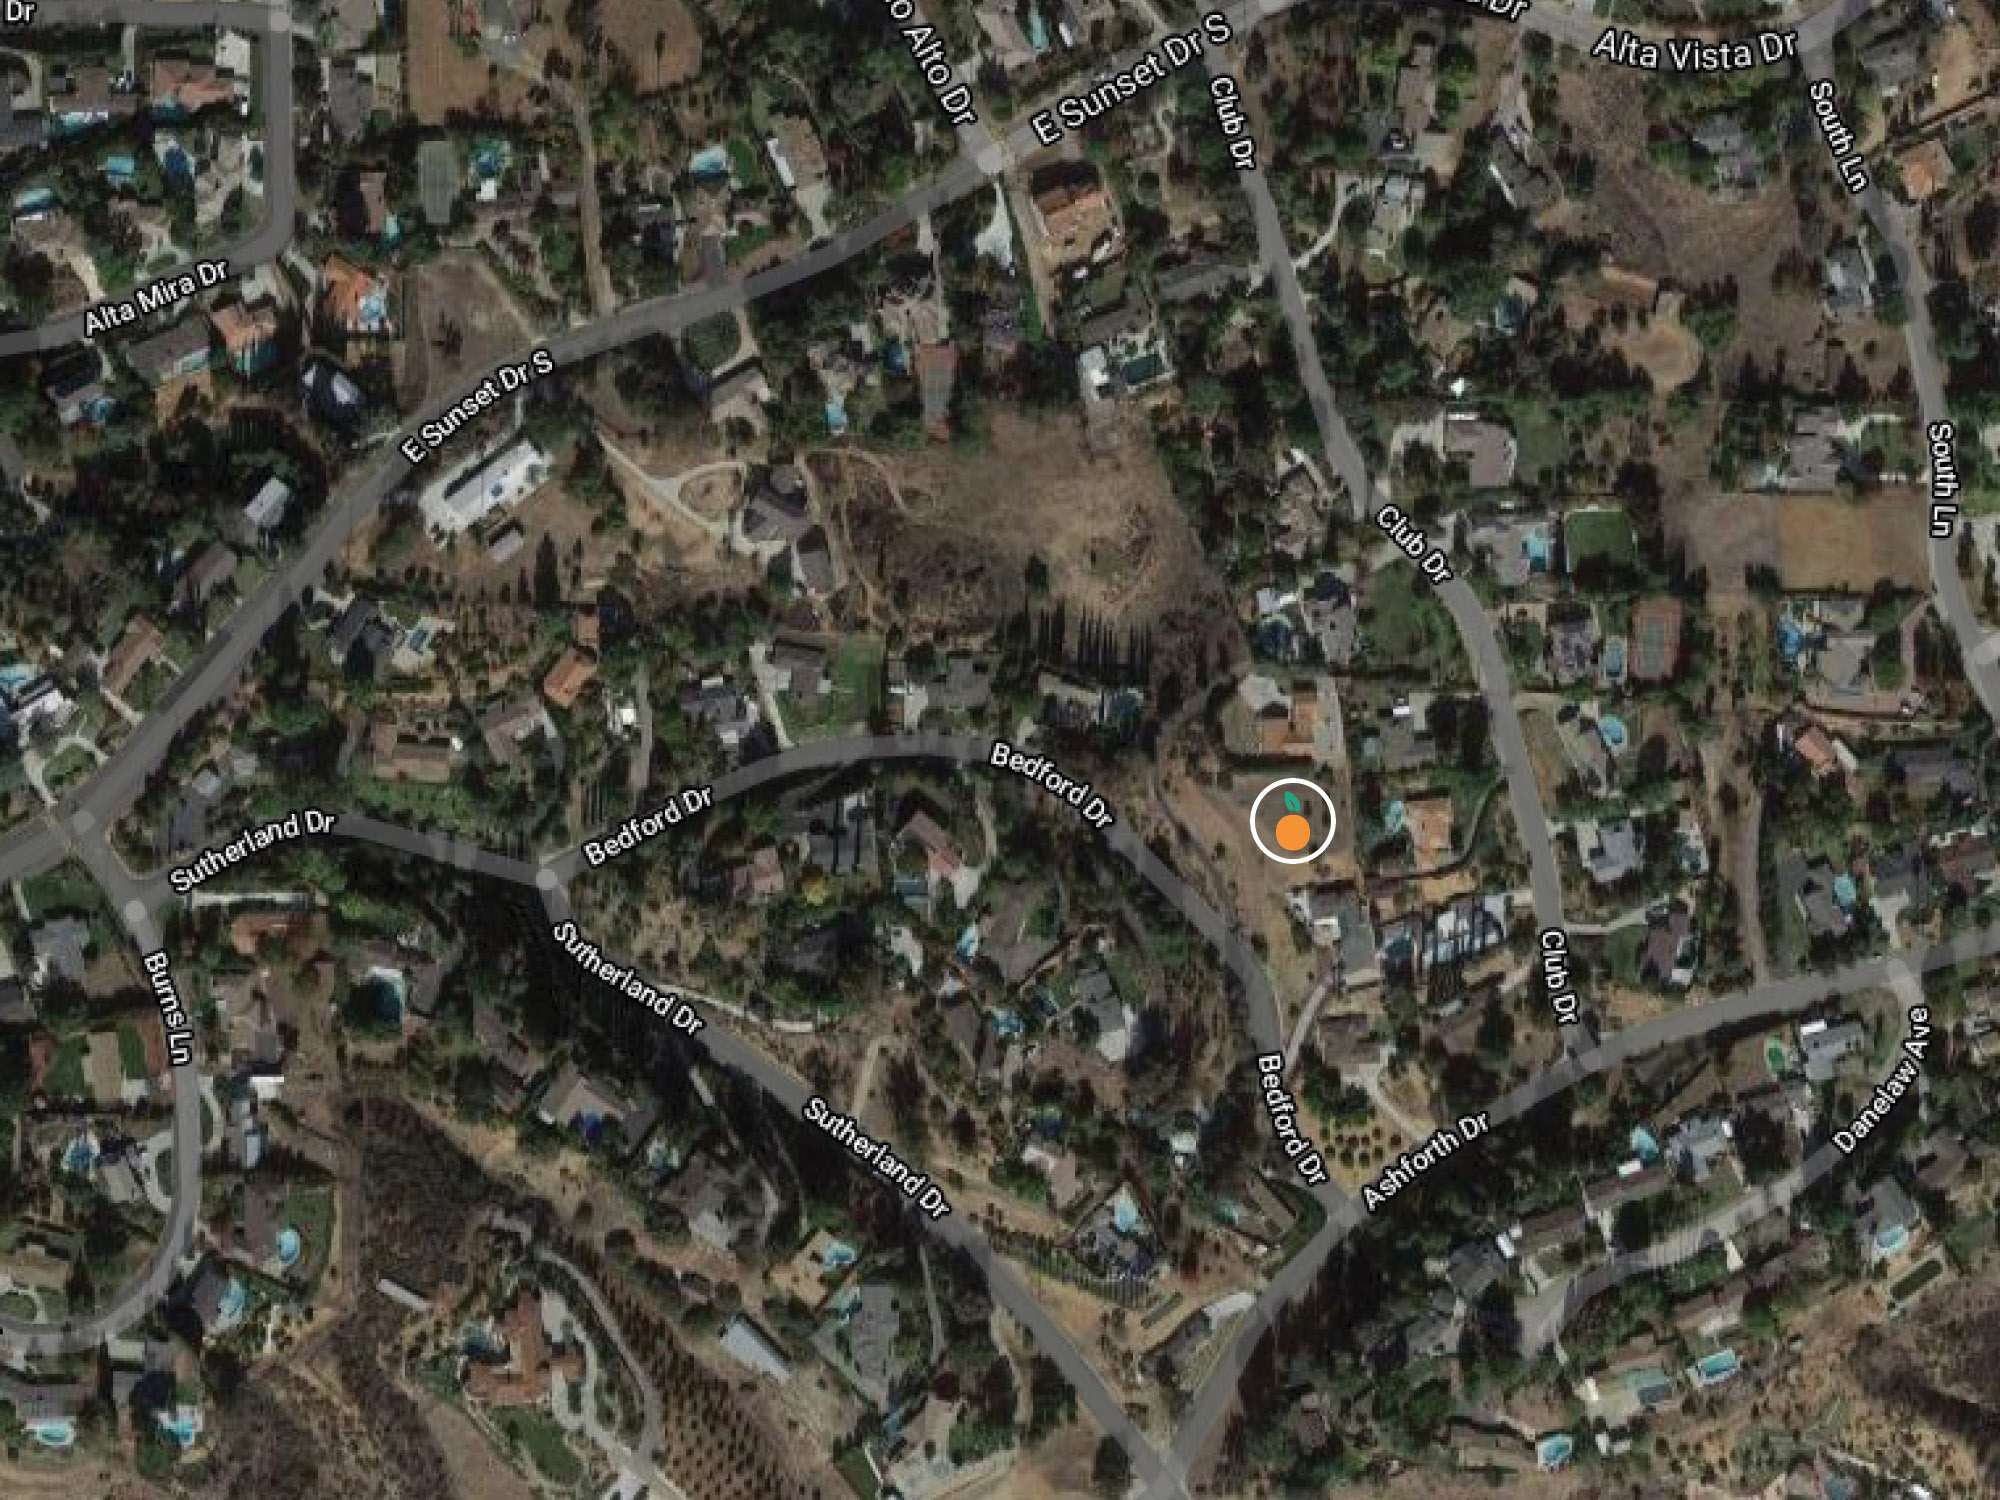 A thumbnail of the screenshot taken from Google Maps. It is marked with an orange icon (same icon from the About Redlands Realty logo), where 0 Bedford Dr., Redlands, CA 92373 is found.